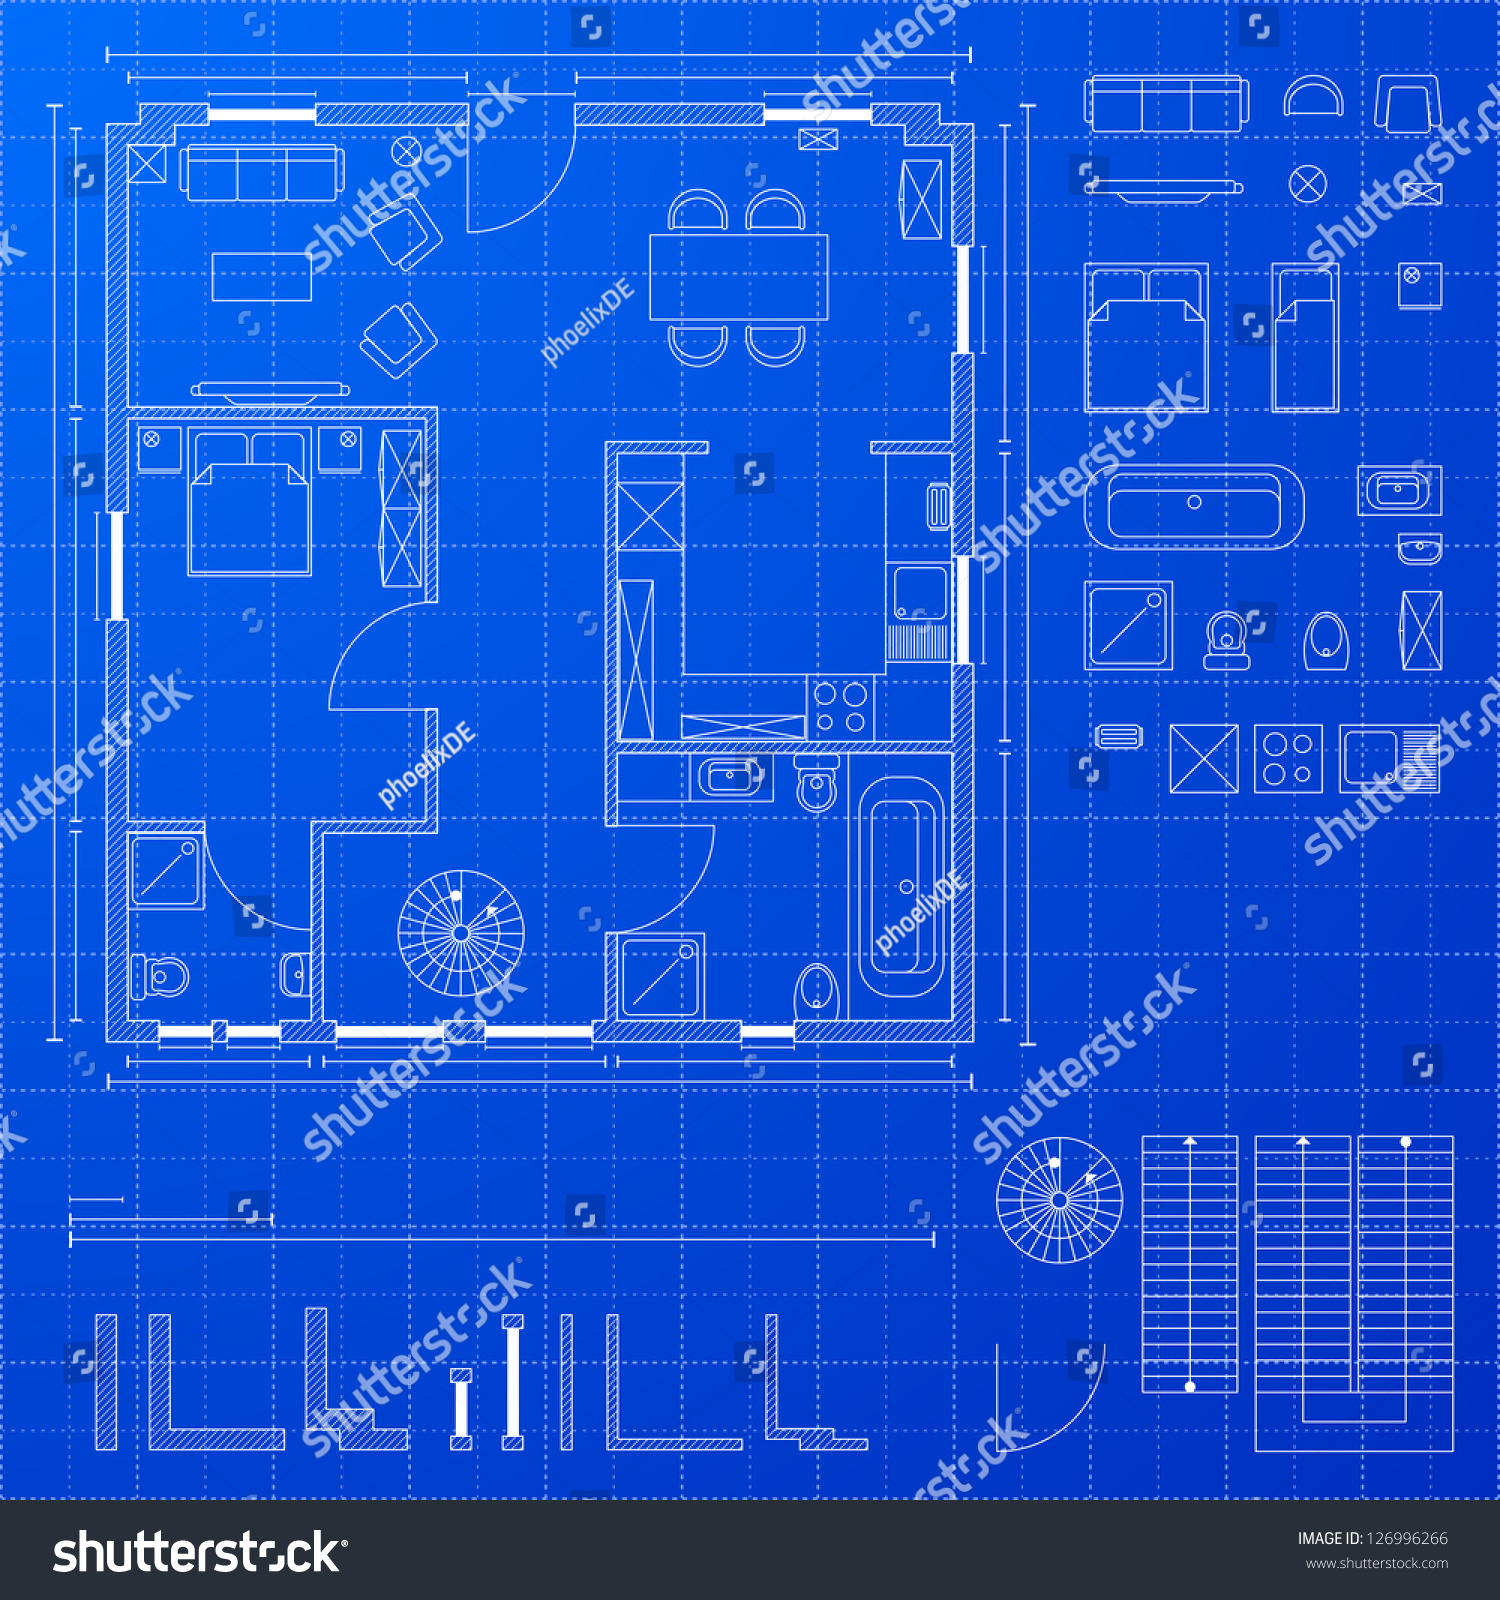 Detailed Illustration Blueprint Floorplan Various Design